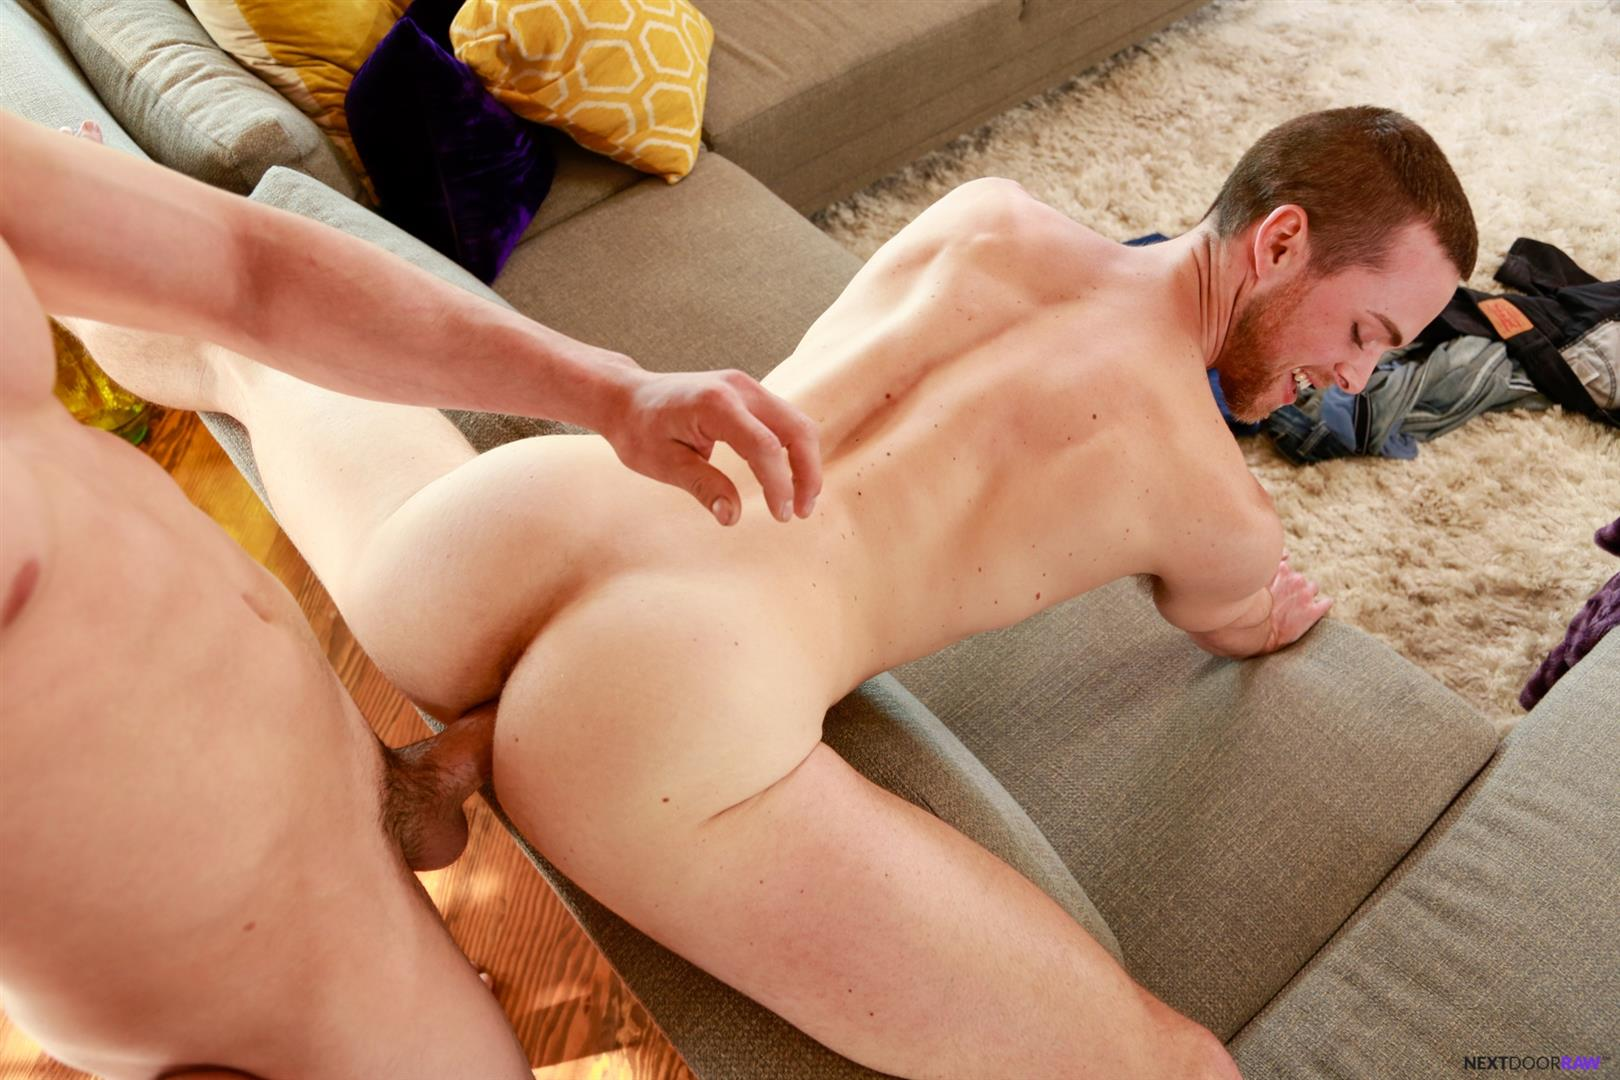 Next Door Raw Derrick Dime and Brandon Moore Roommates Bareback Sex Amateur Gay Porn 12 Next Door Raw:  Derrick Dime Barebacks Brandon Moore With His Fat Cock